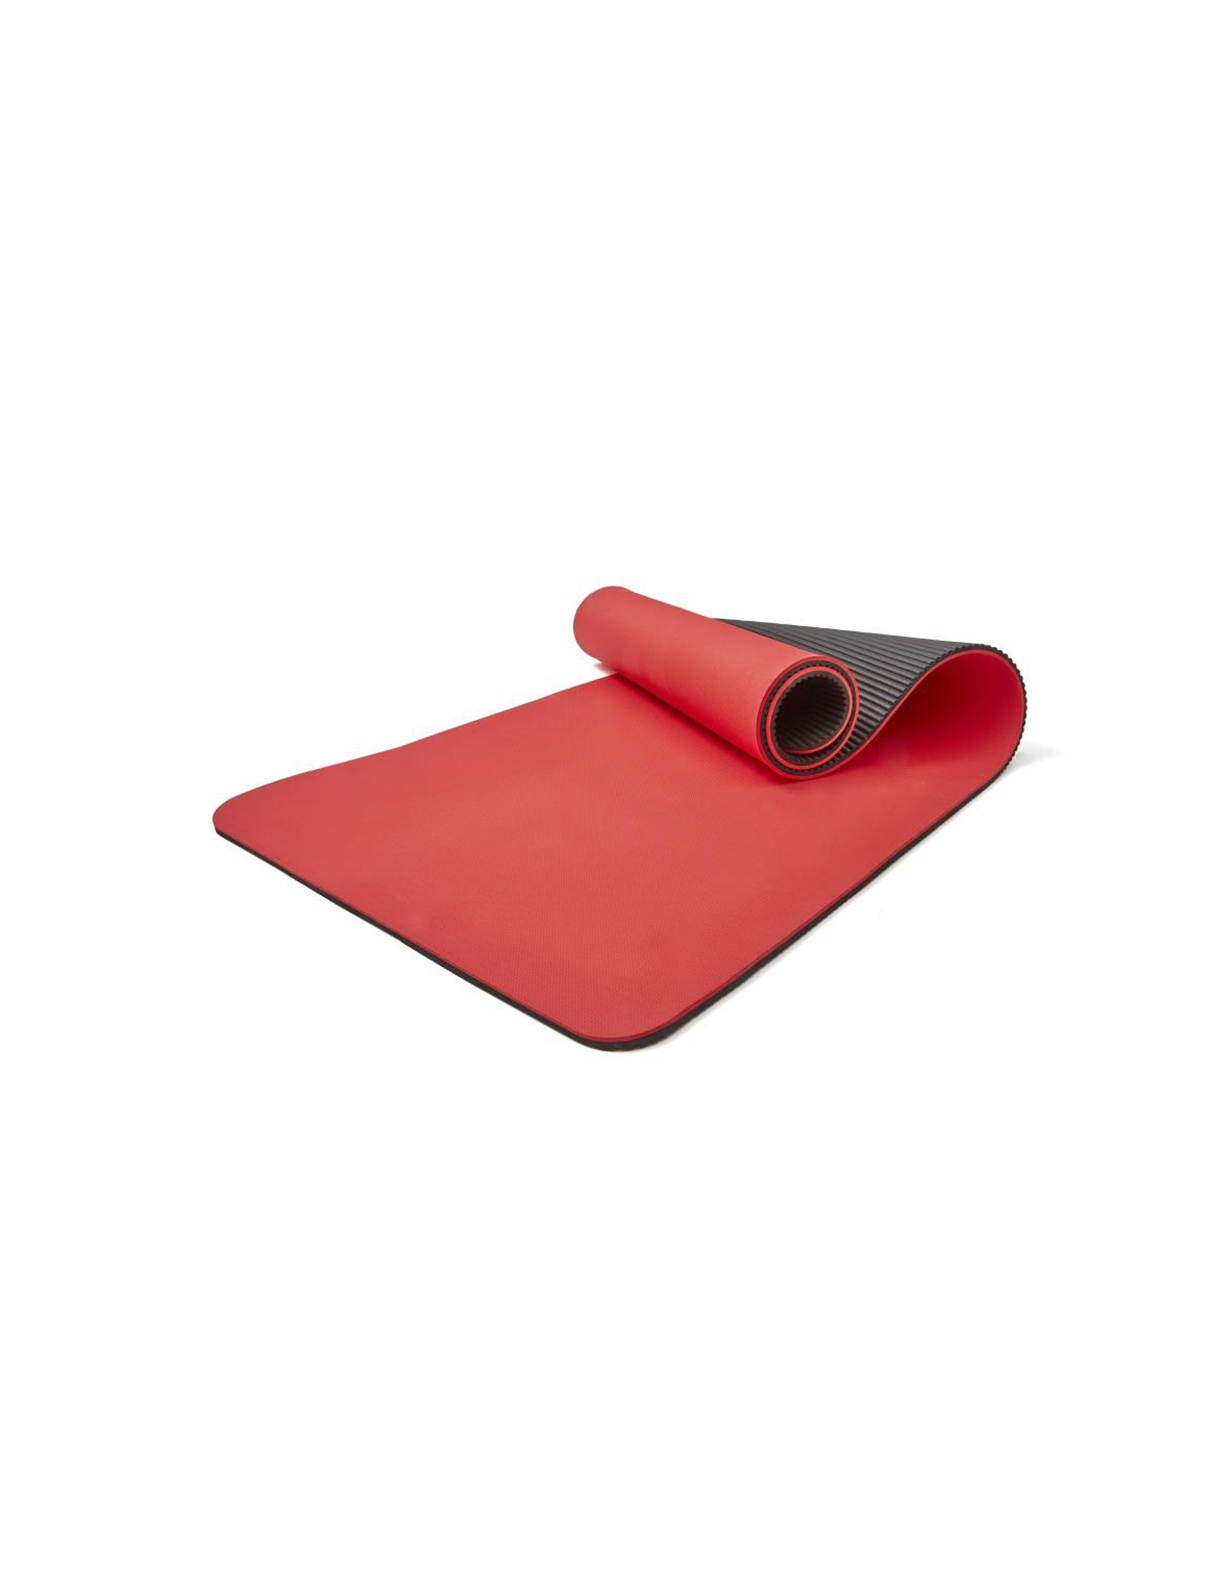 RSMT-40030RD Functional Mat - Red